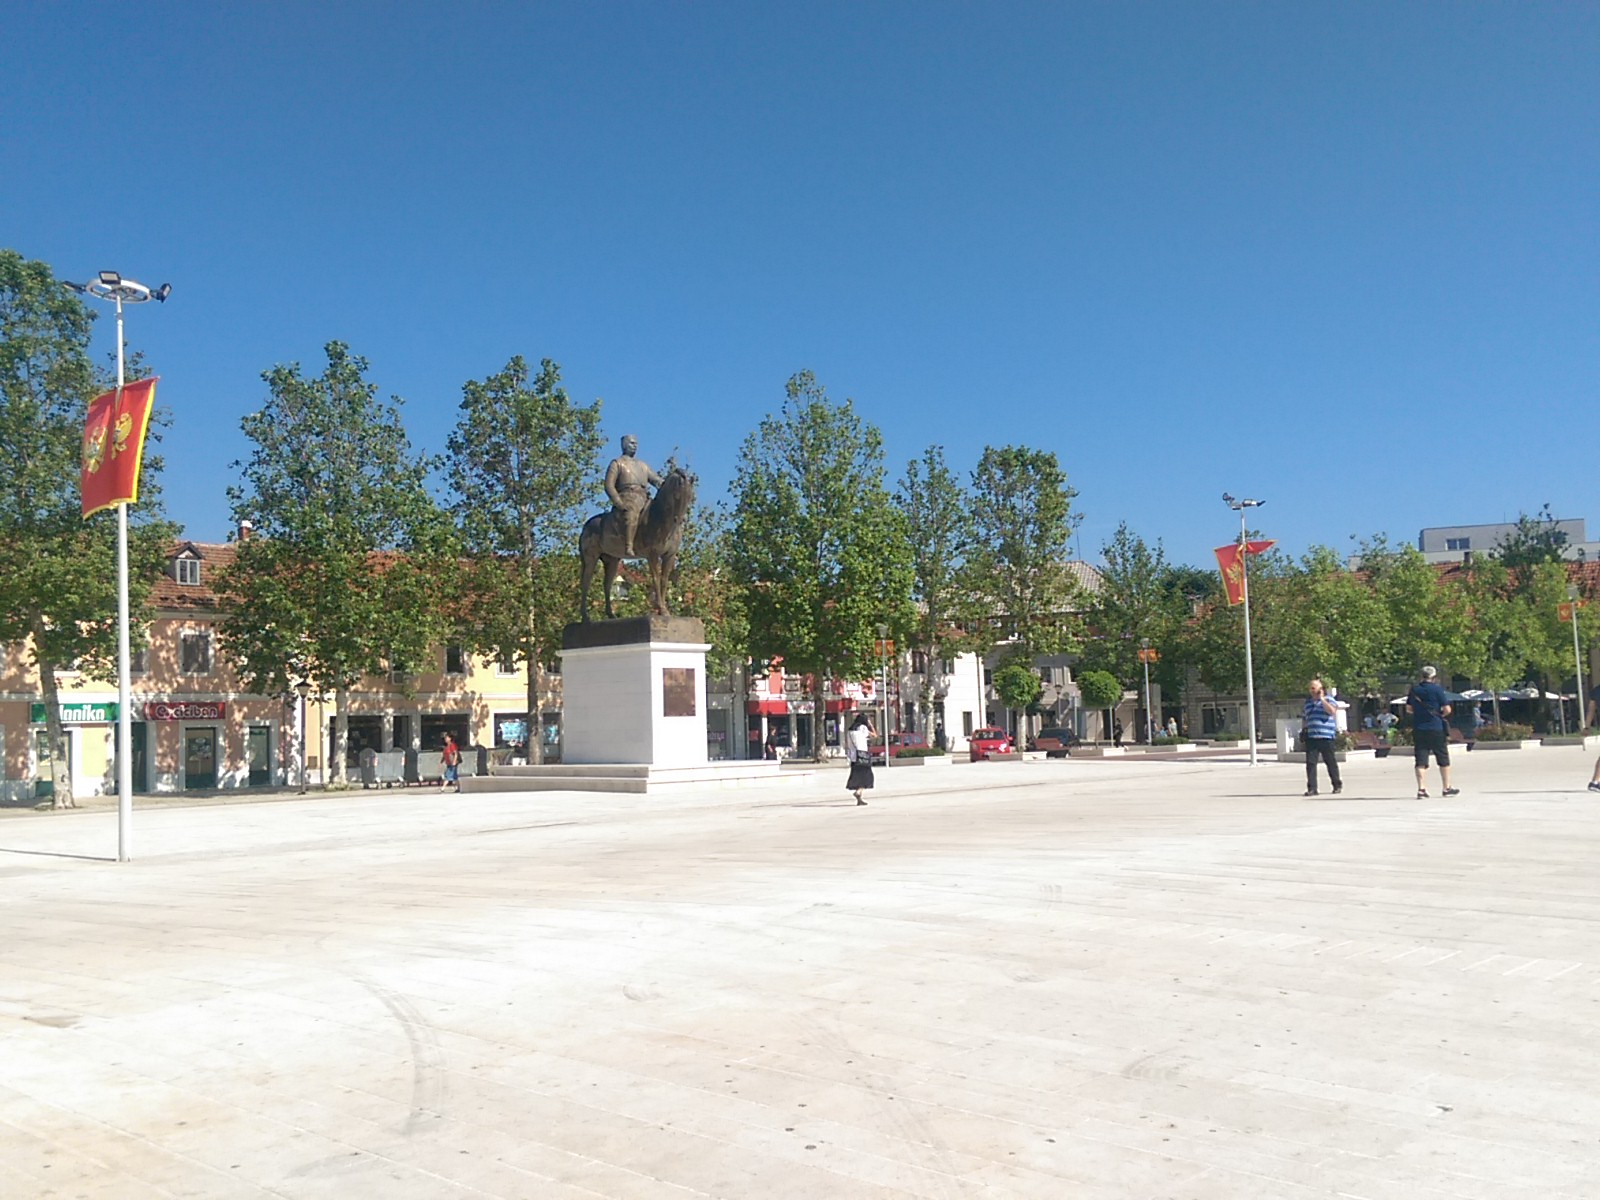 A paved concrete square with a statue of a man on a horse, some trees and people and blue sky